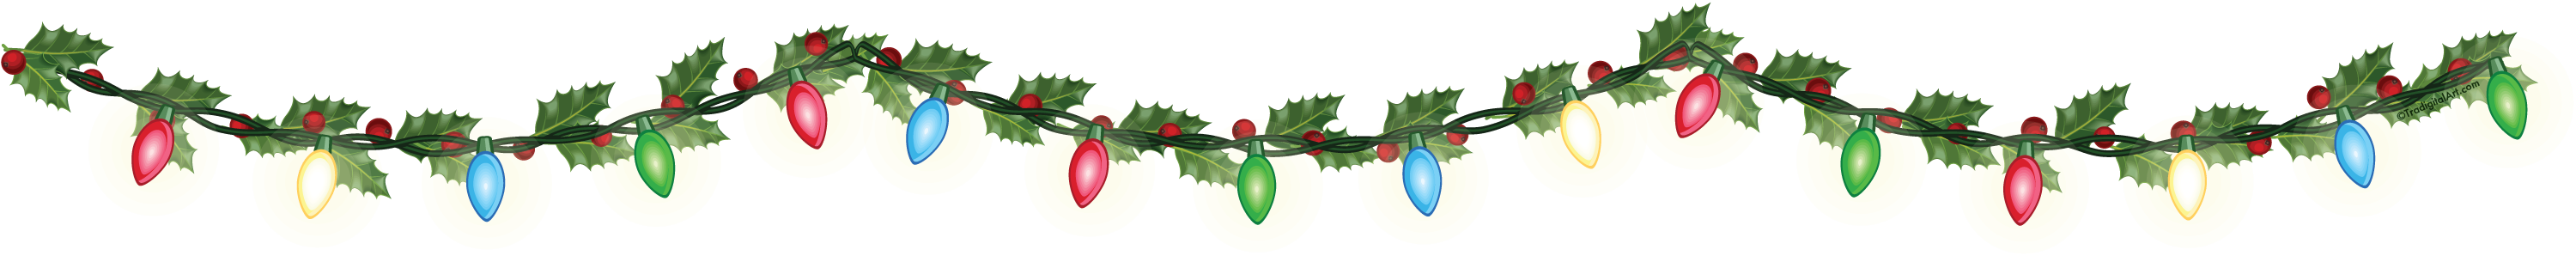 Christmas Lights clipart reminder January Schedule Holiday PCS 2nd